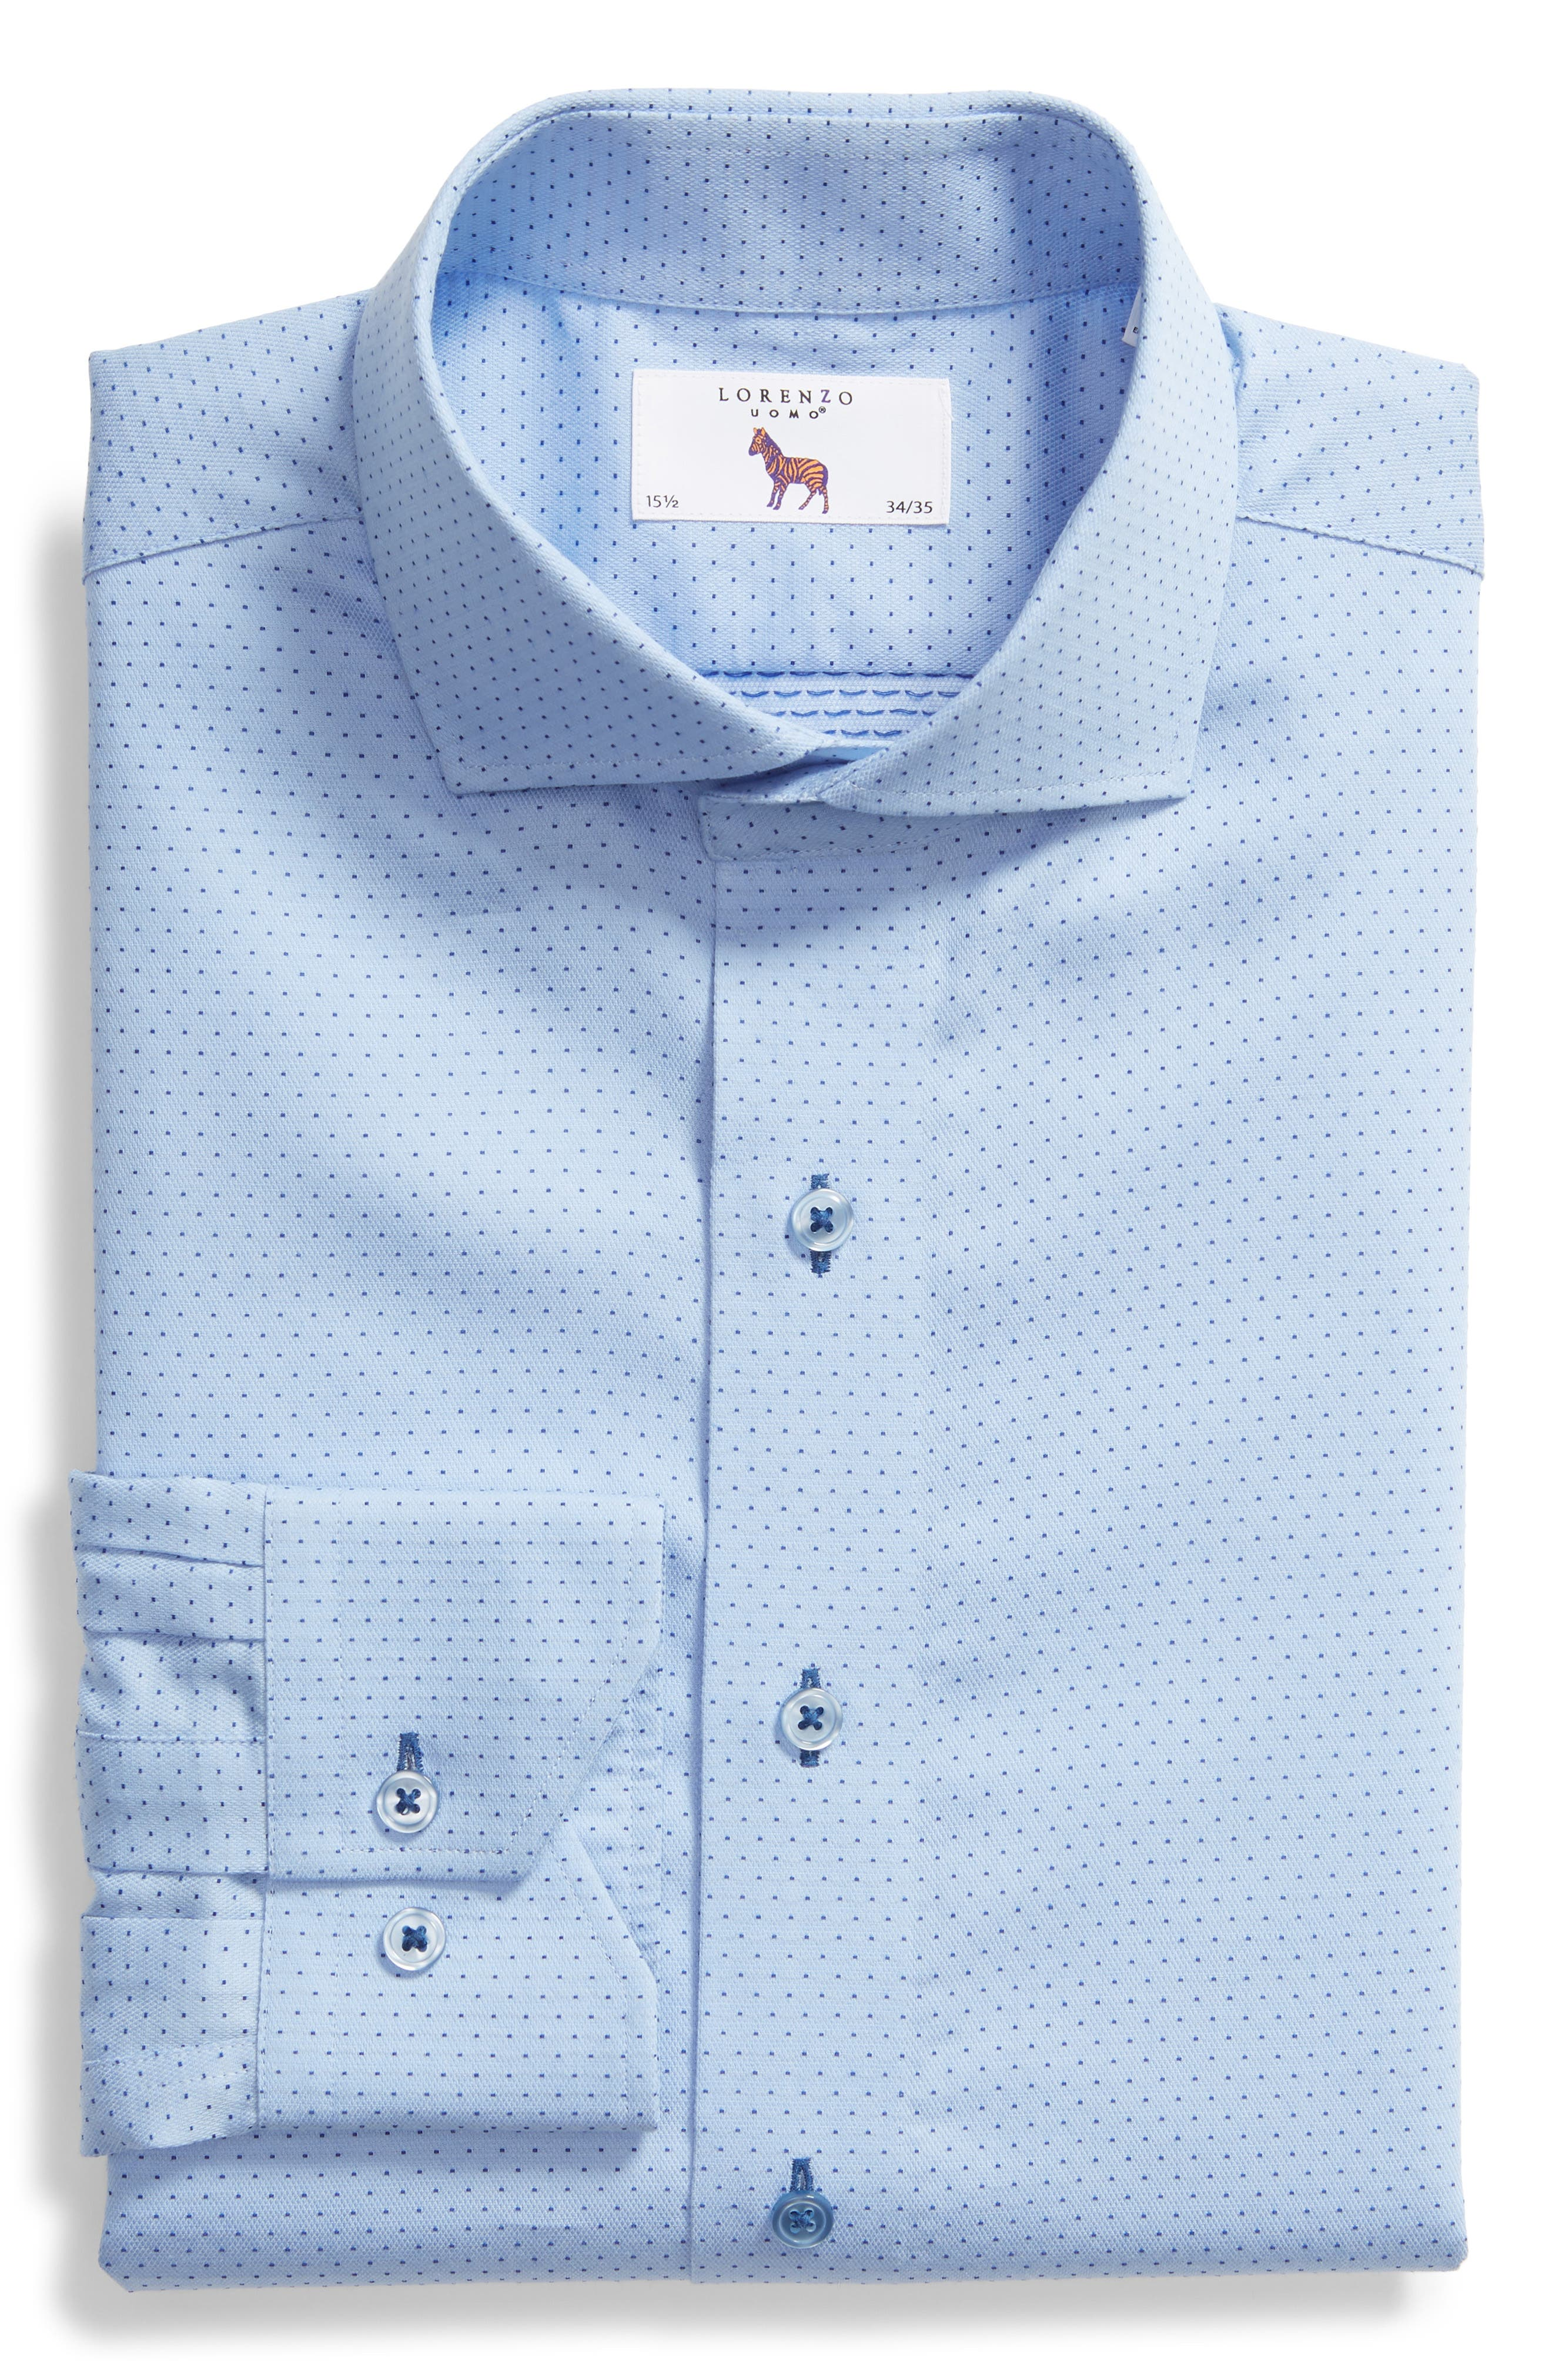 LORENZO UOMO,                             Trim Fit Dot Dress Shirt,                             Alternate thumbnail 5, color,                             LT BLUE